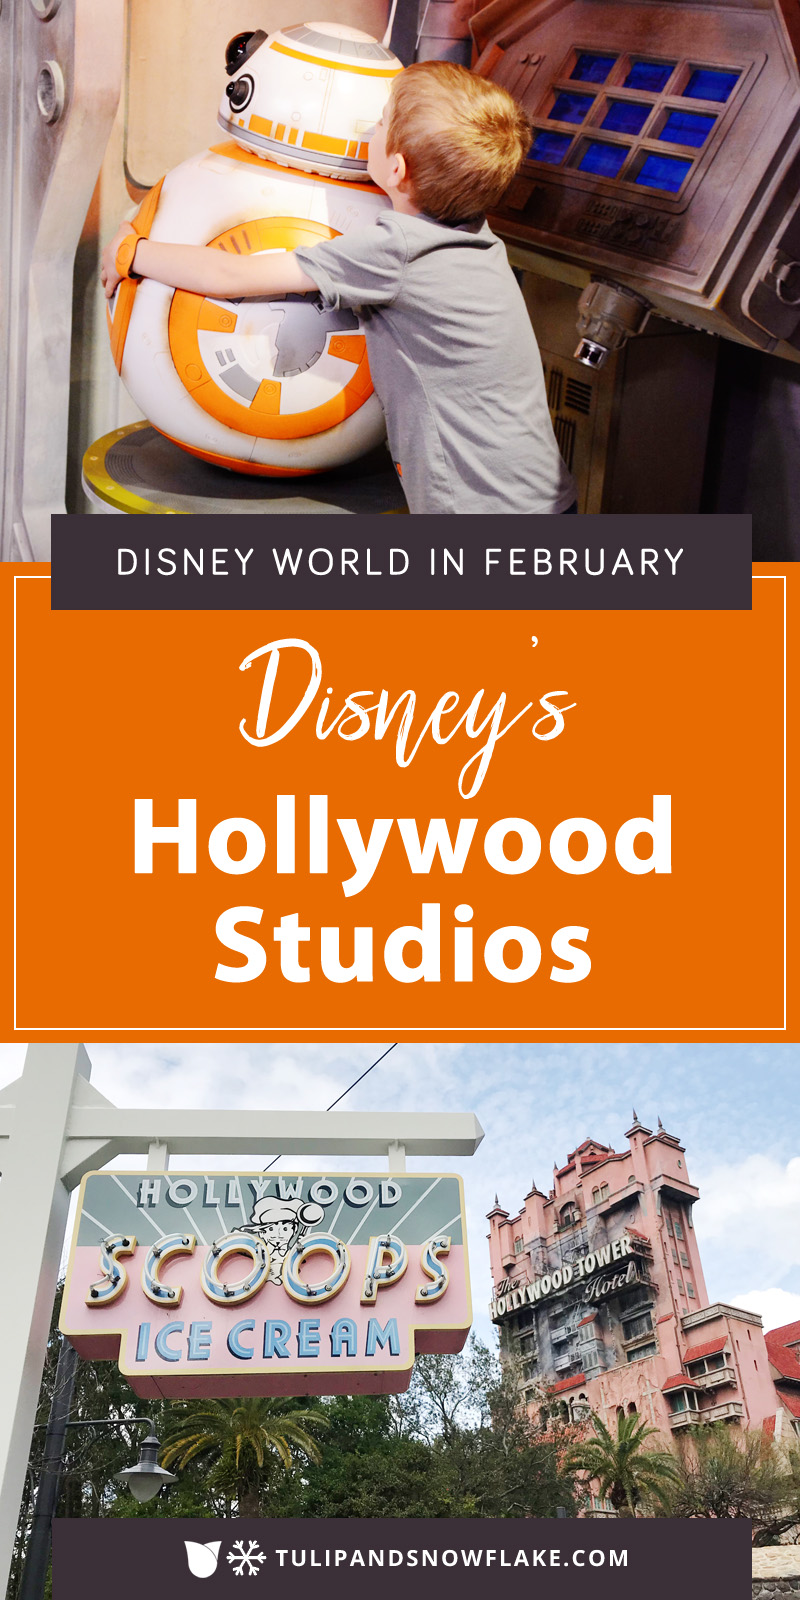 Disney's Hollywood Studios in February